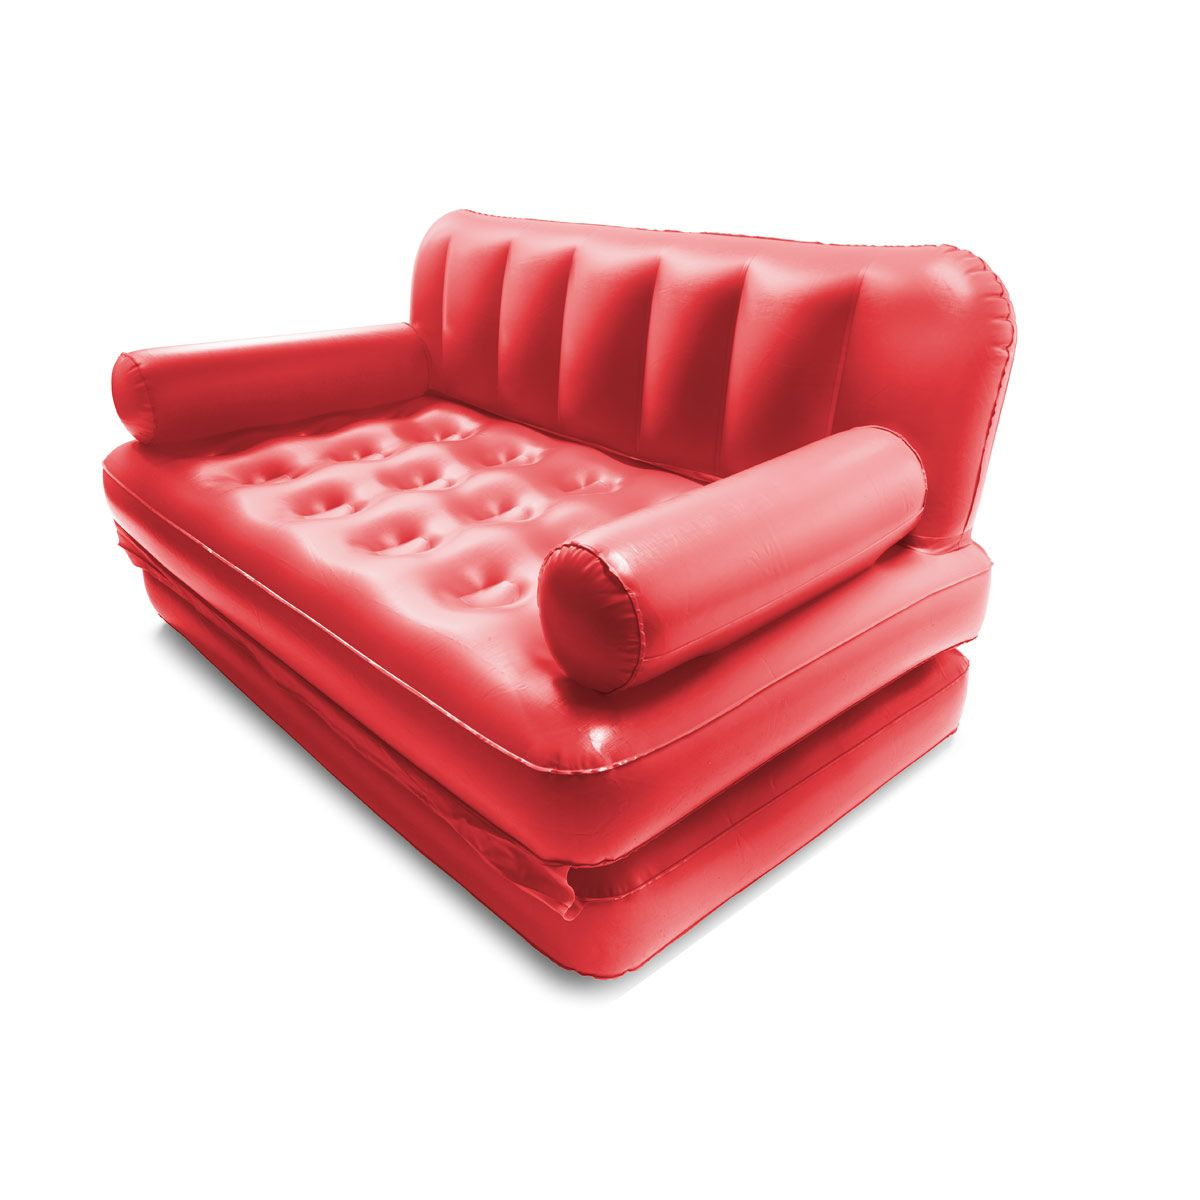 Multi Function Couch Double Bed Red Kmart Inflatable Sofa